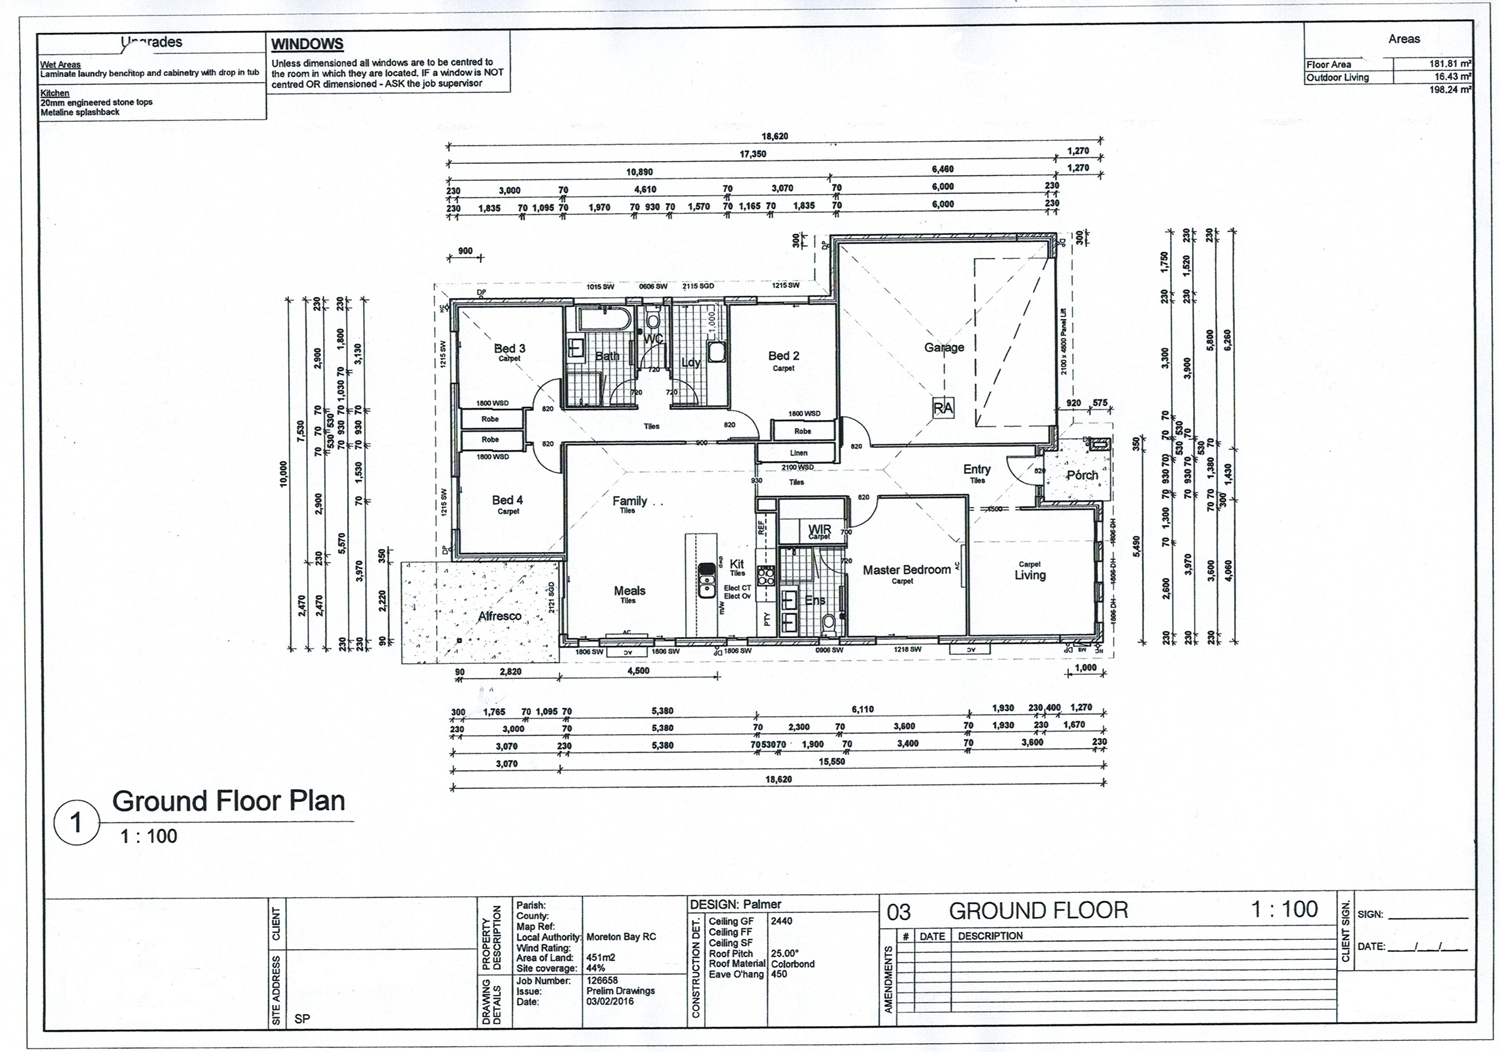 Ground Floor Plan_2.jpg